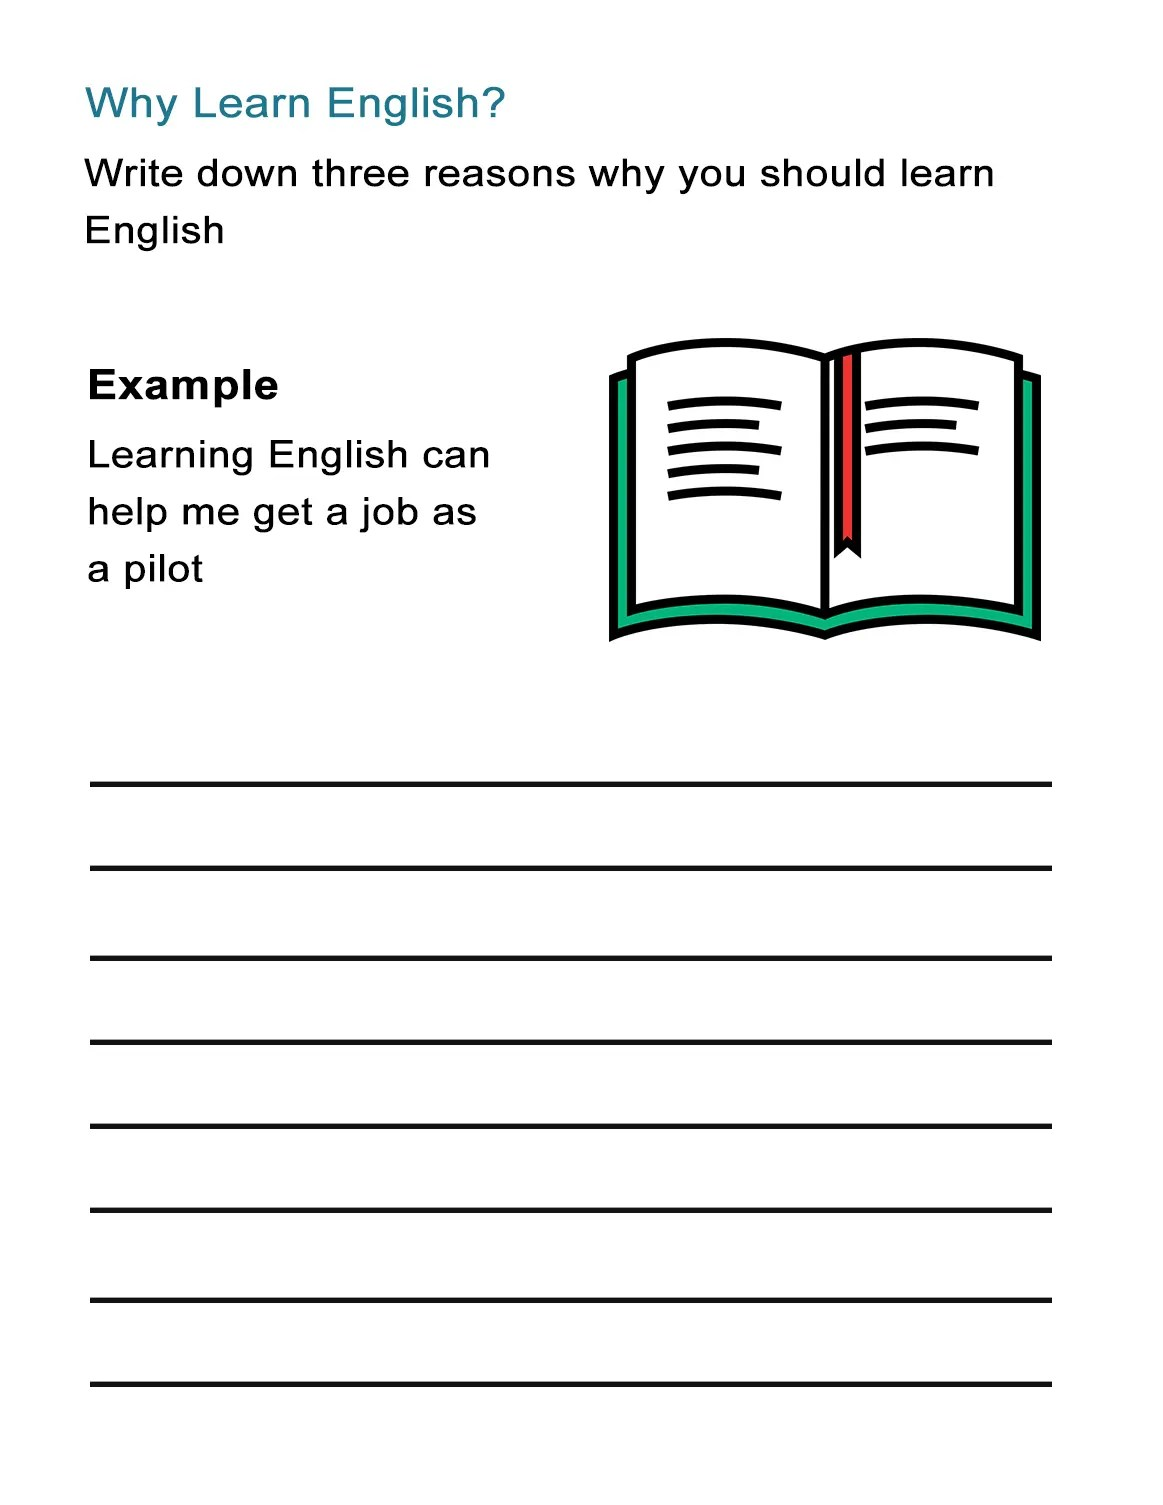 Why Learn English Worksheet On The Benefits Of Learning